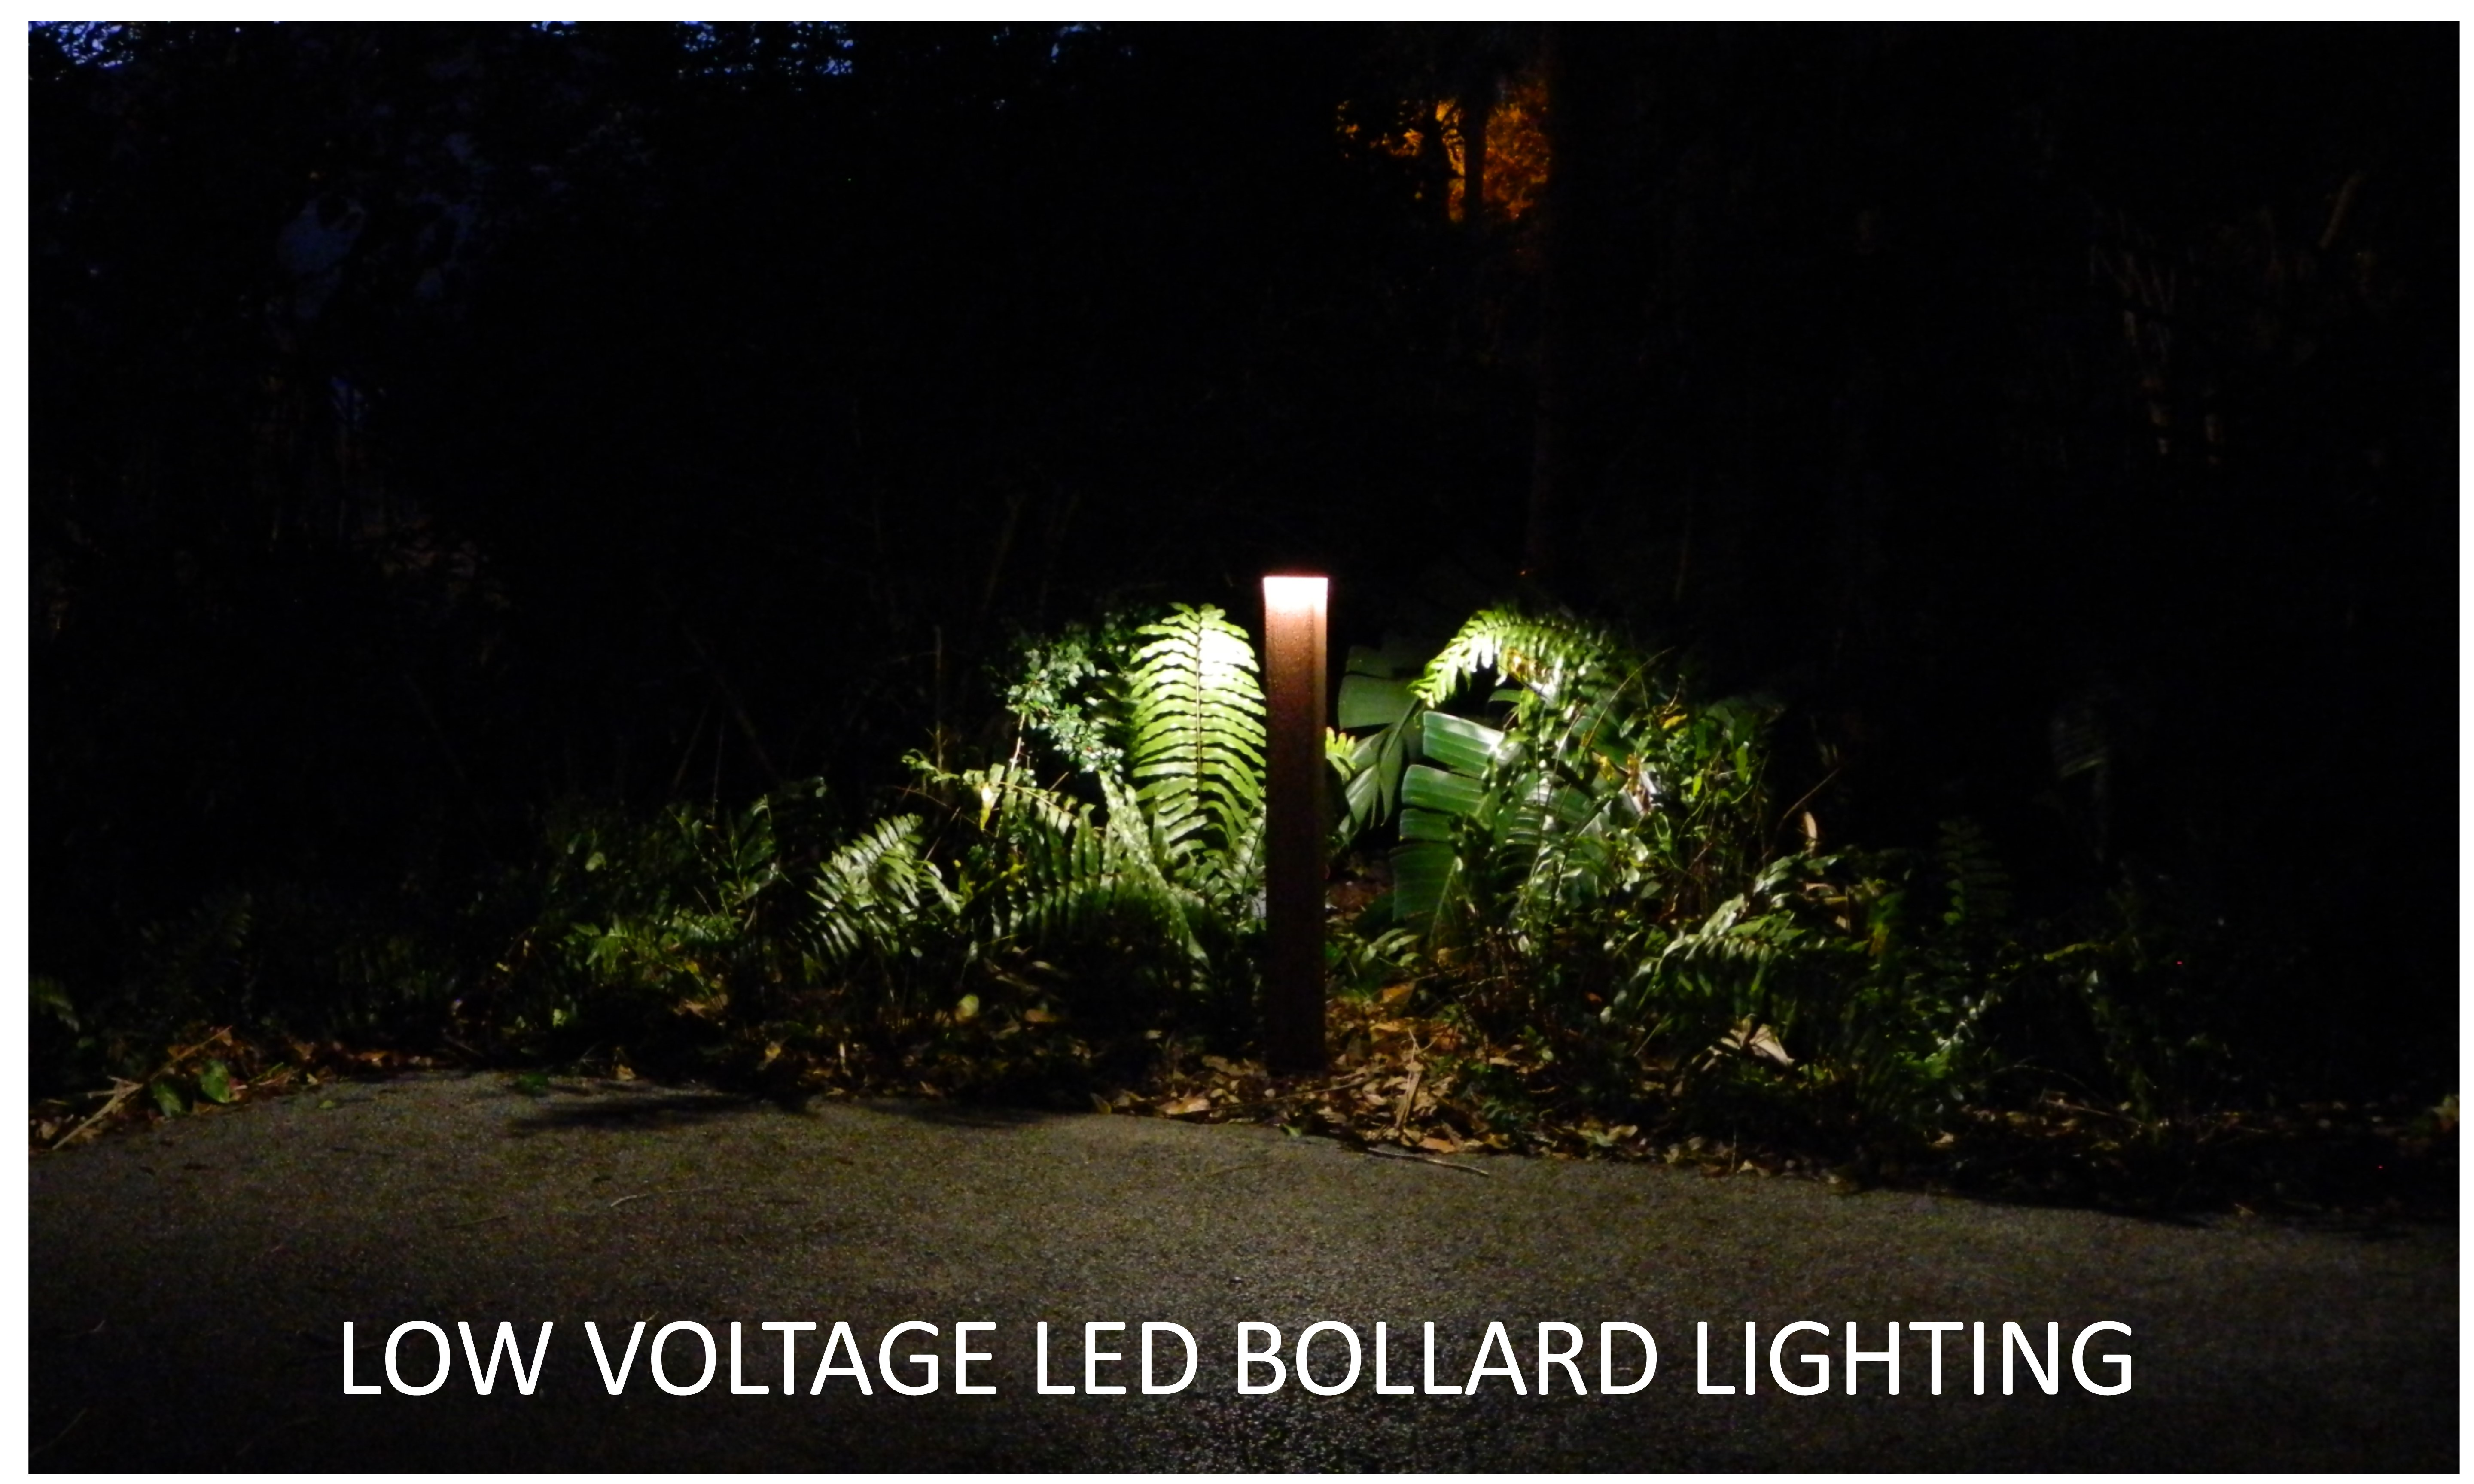 This is a photo of a low voltage LED bollard fixture in a landscaped area.